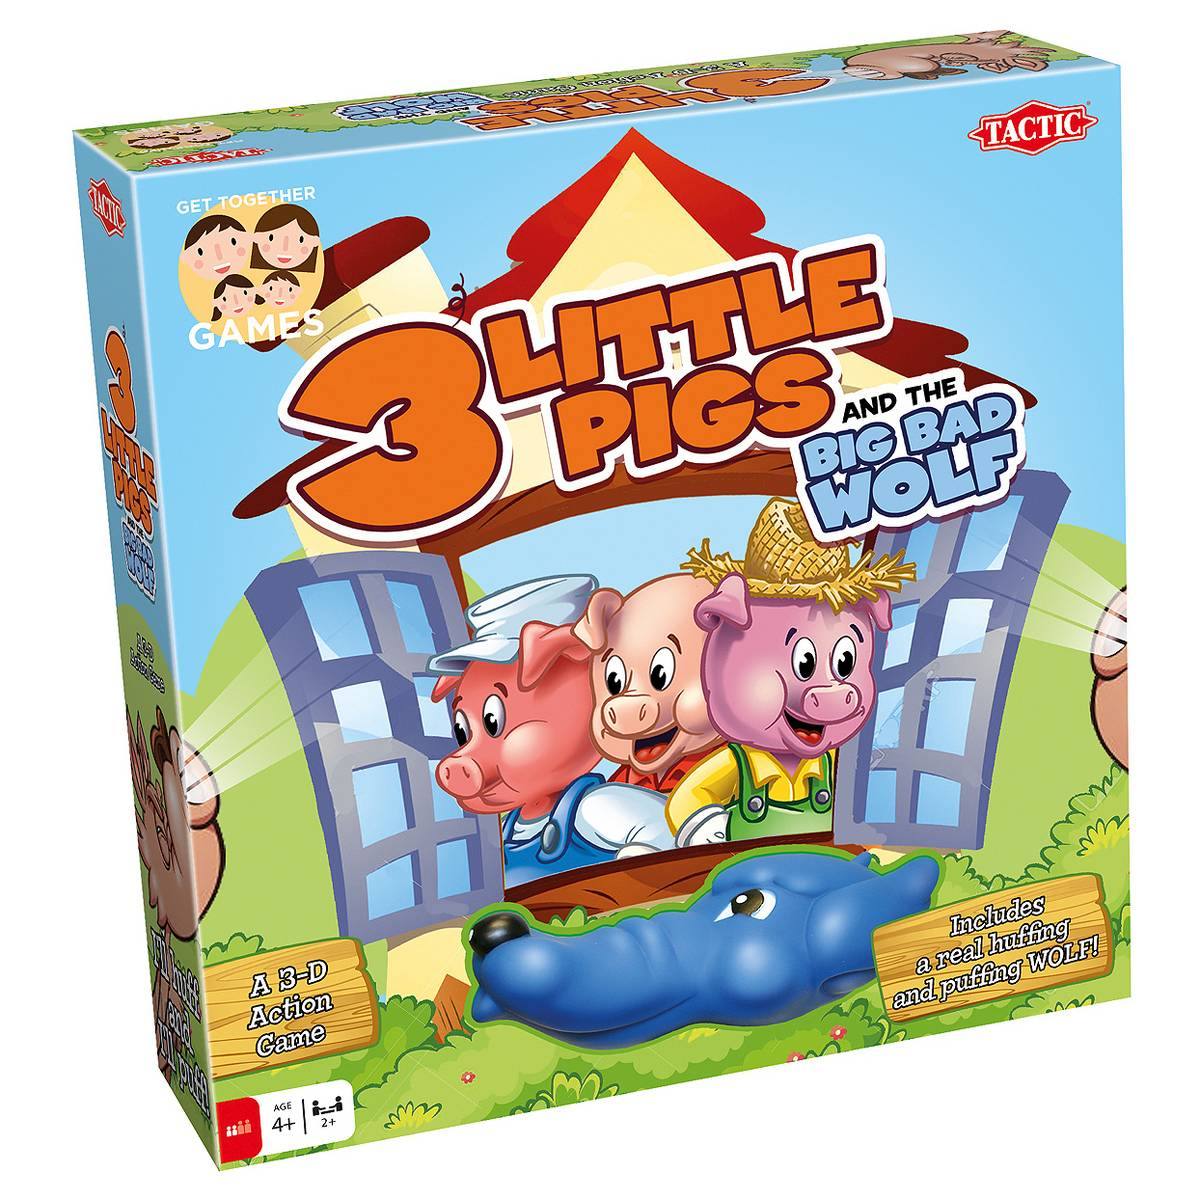 3 Little Pigs and the Big Bad Wolf Board Game #HolidayGiftGuide ...